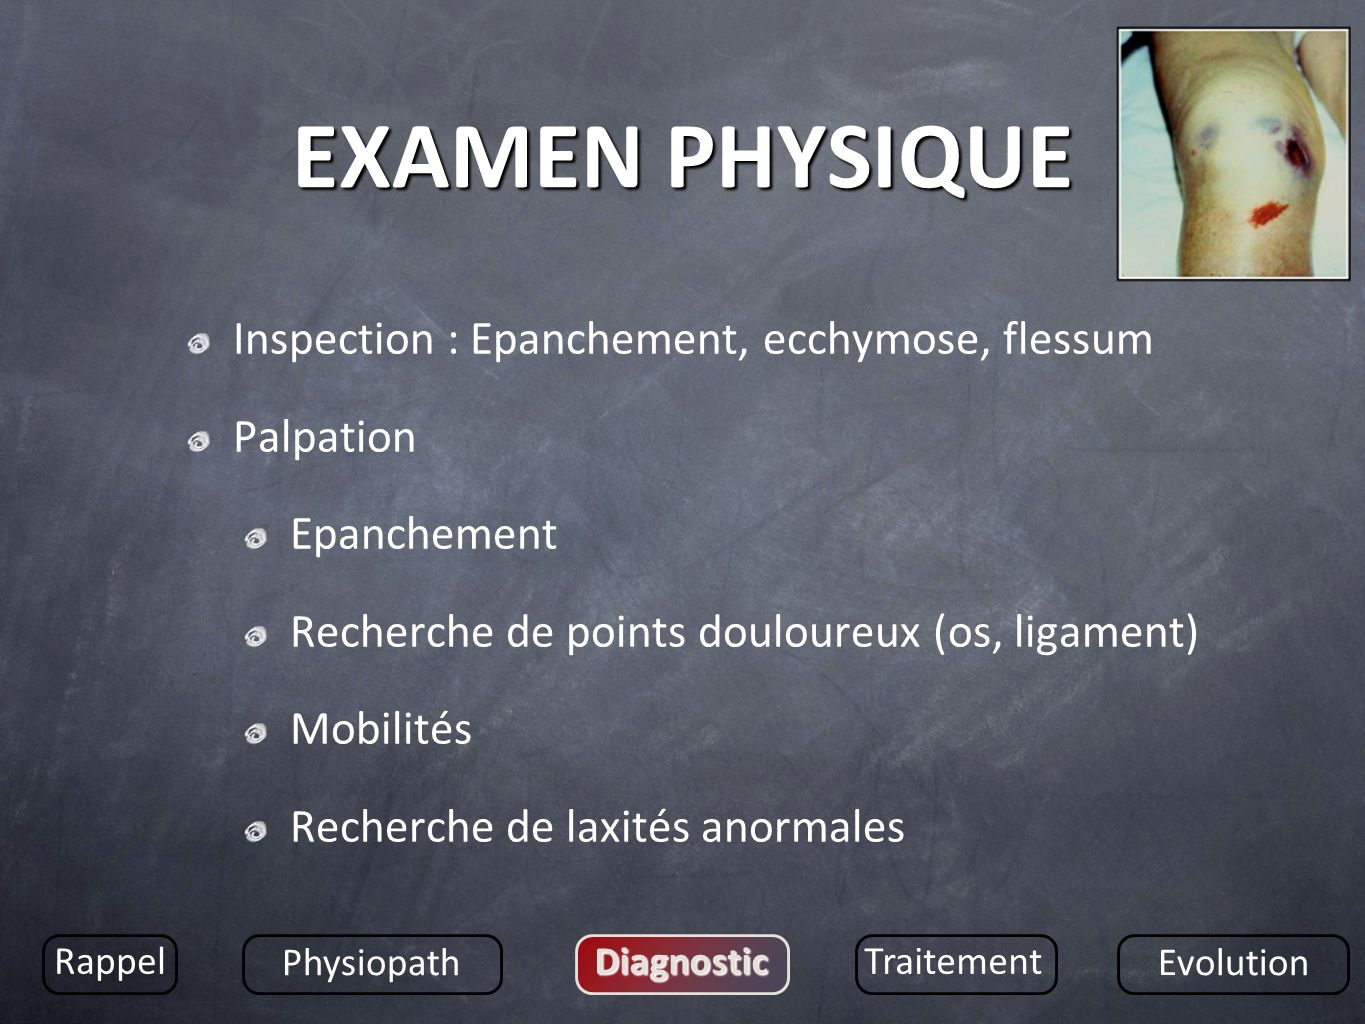 EXAMEN PHYSIQUE Inspection : Epanchement, ecchymose, flessum Palpation